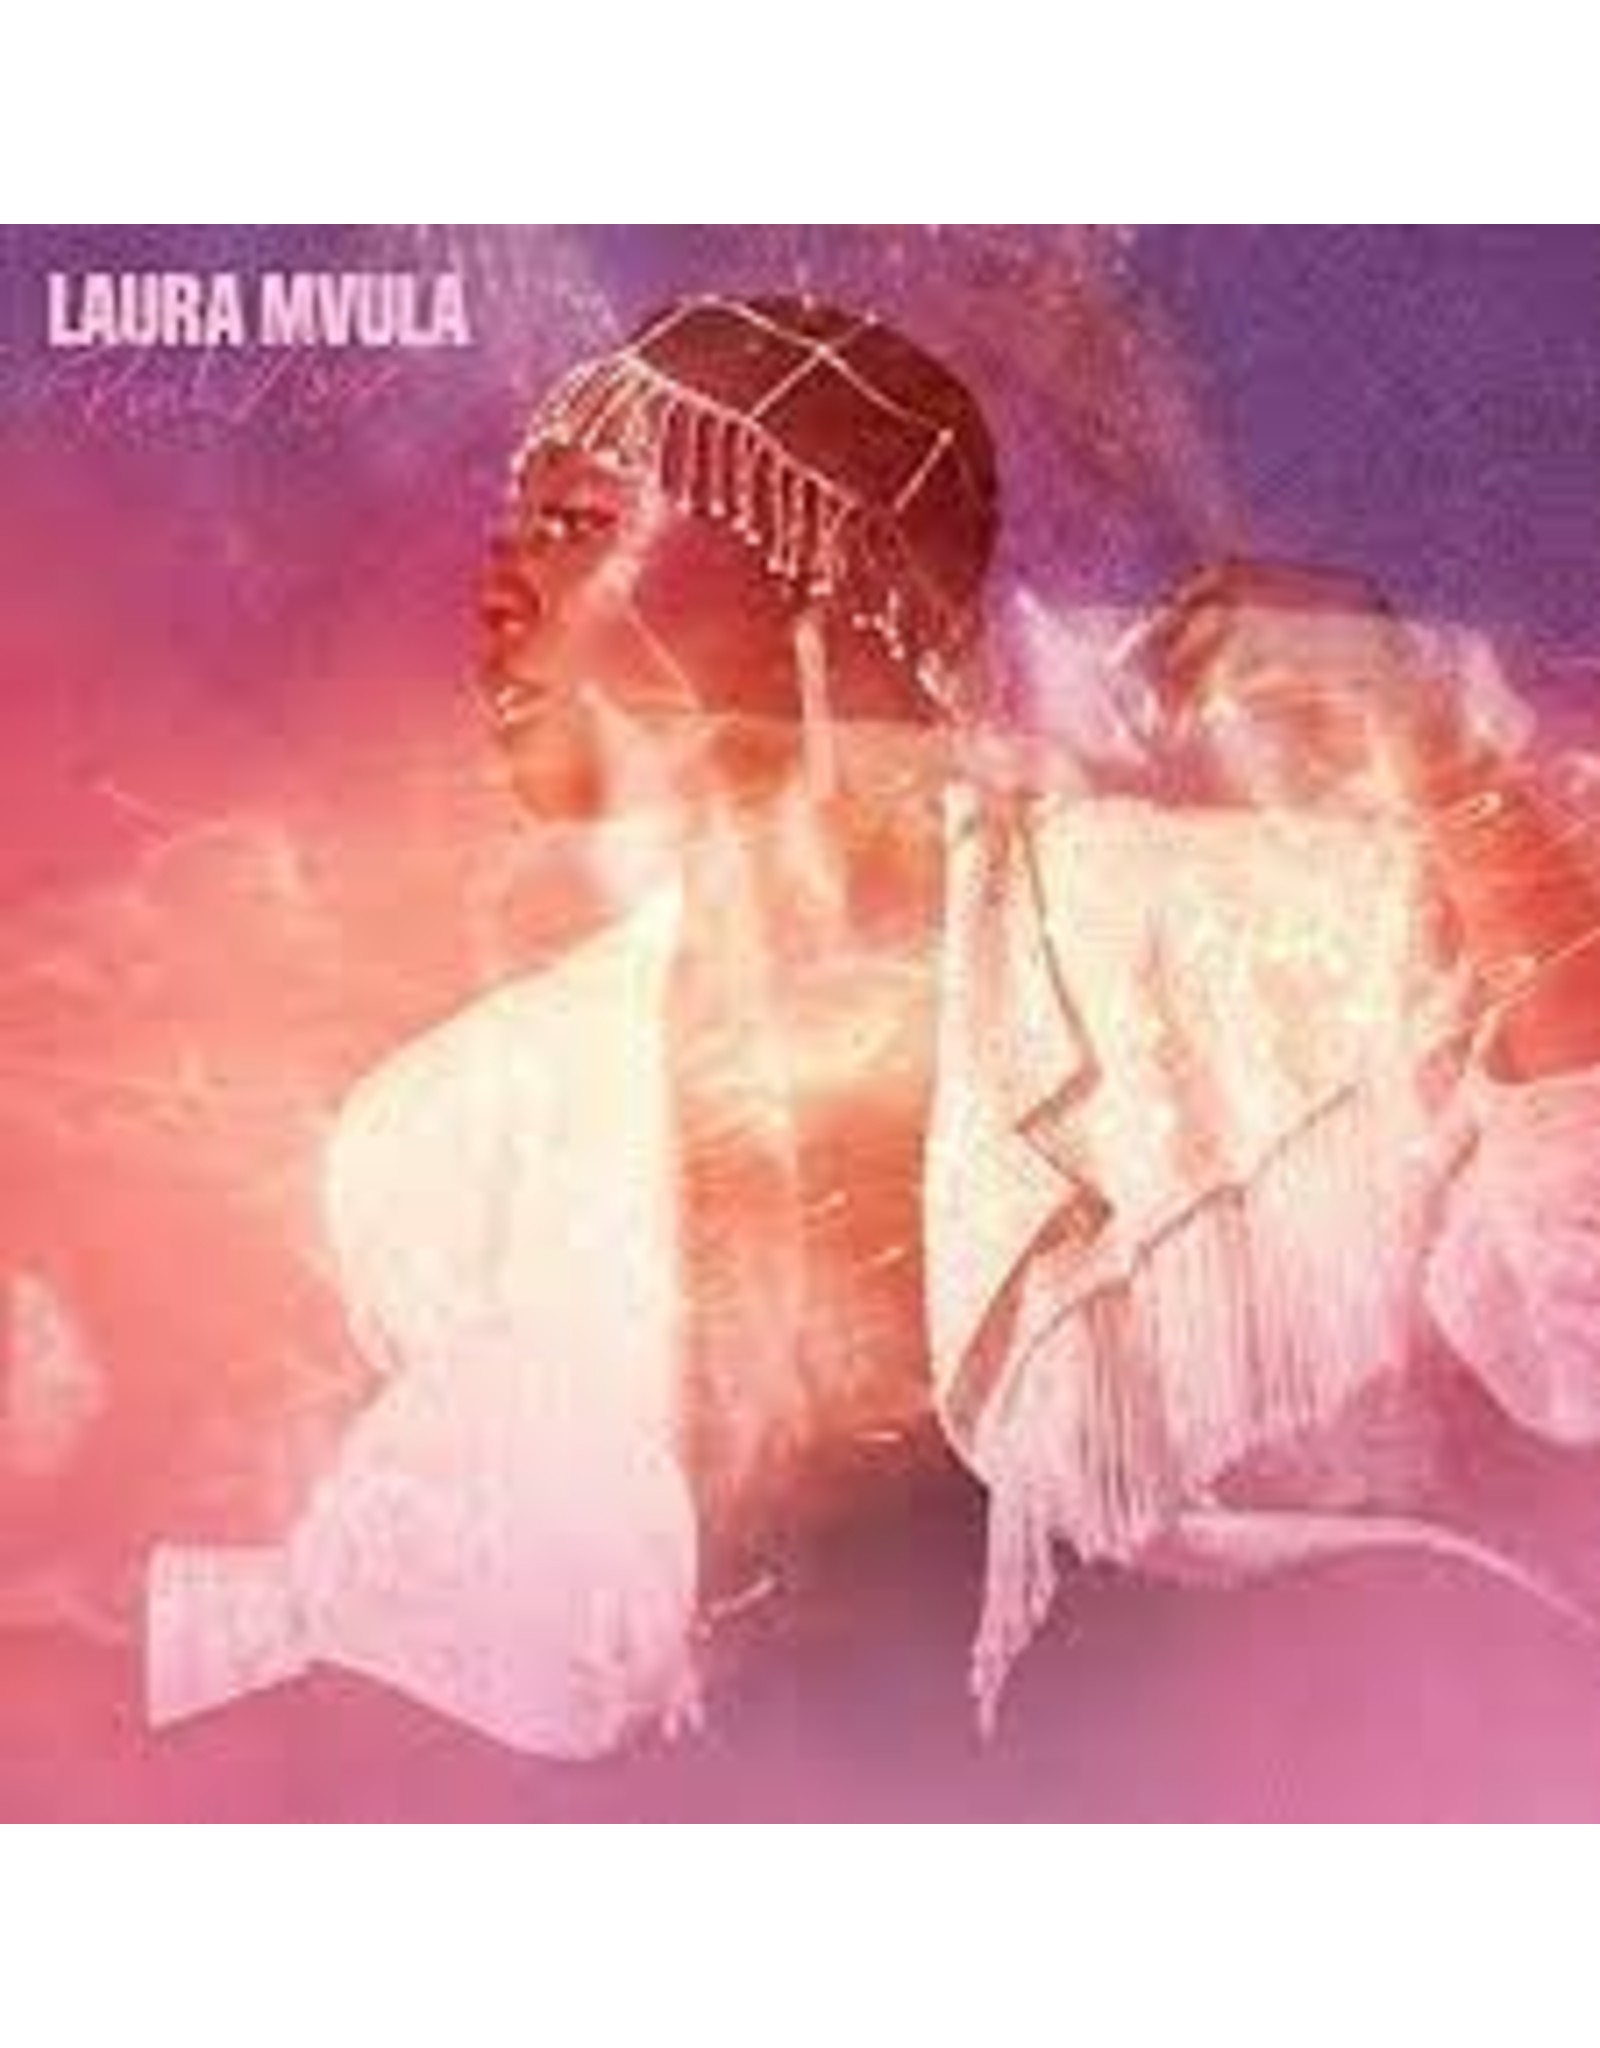 Mvula, Laura - Pink Noise ORNG LP